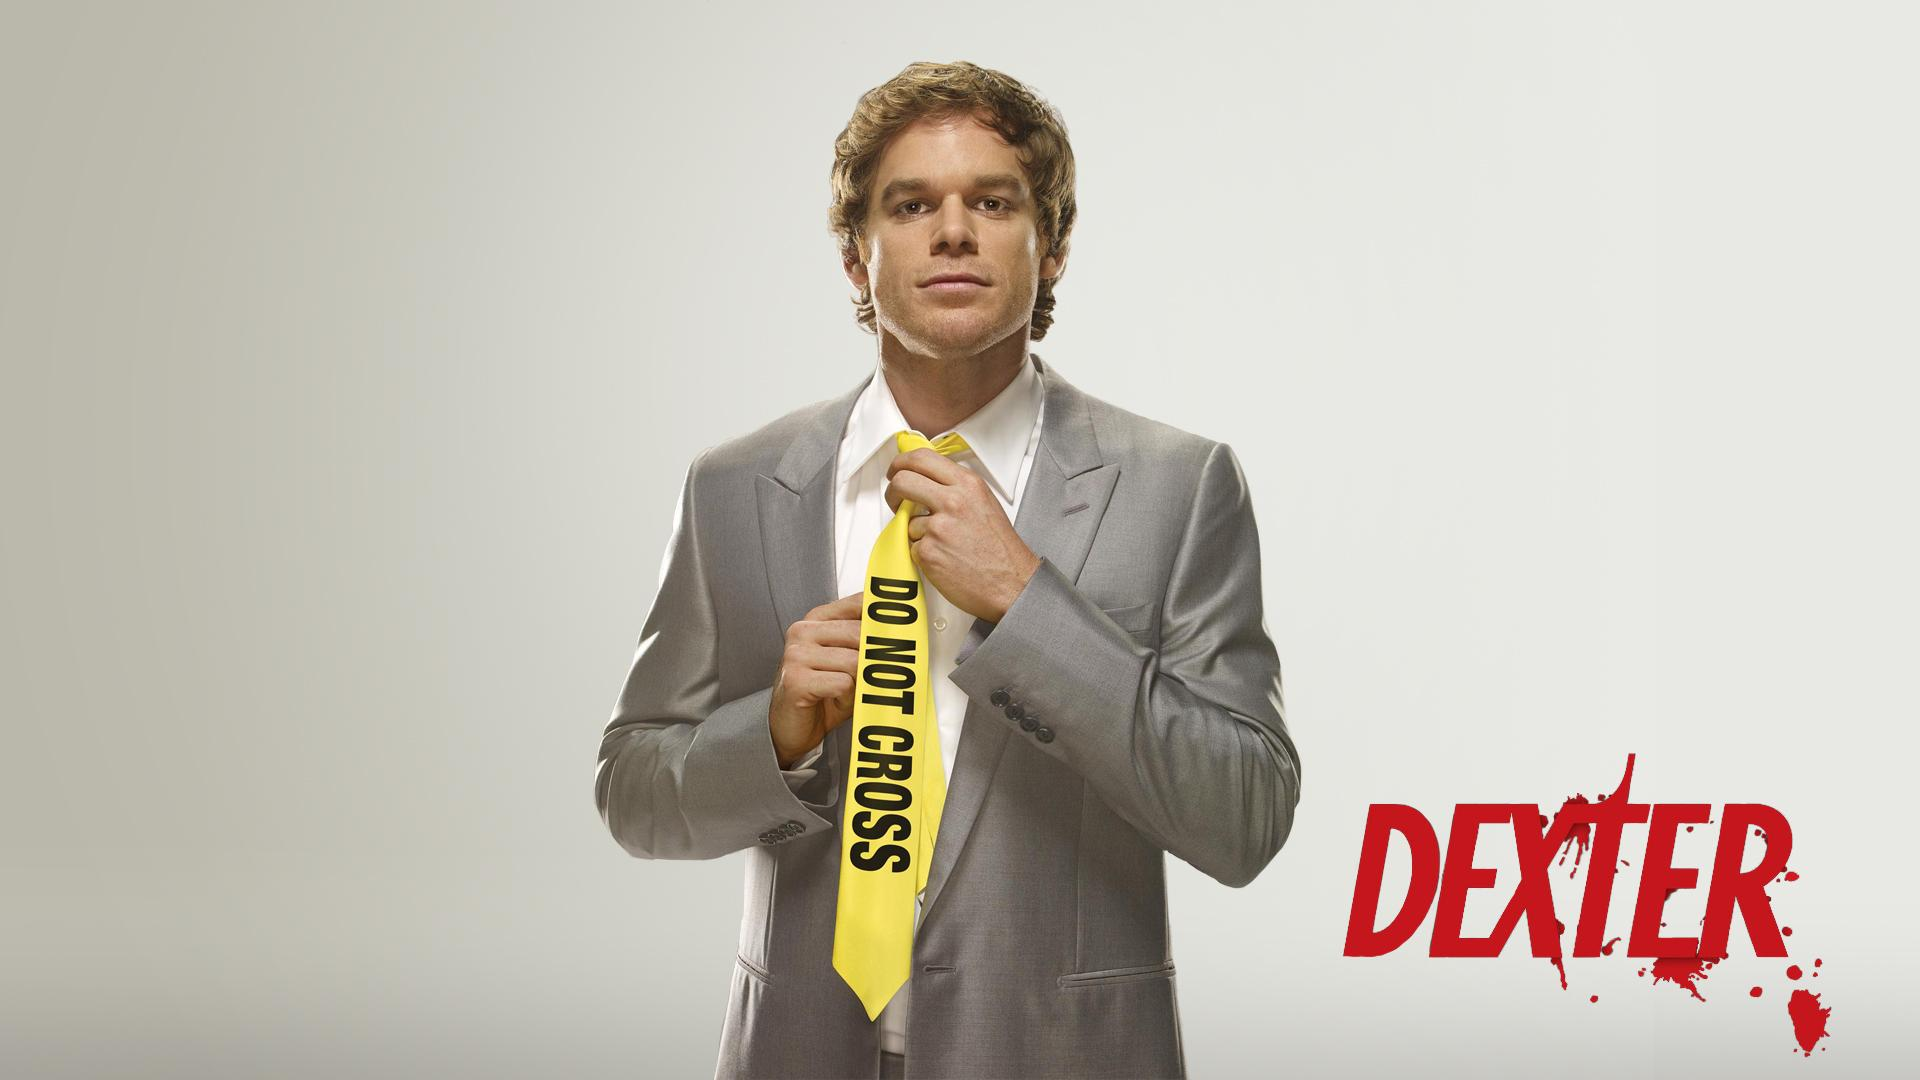 Обои Dexter Morgan в галстуке Do Not Cross 1920x1080